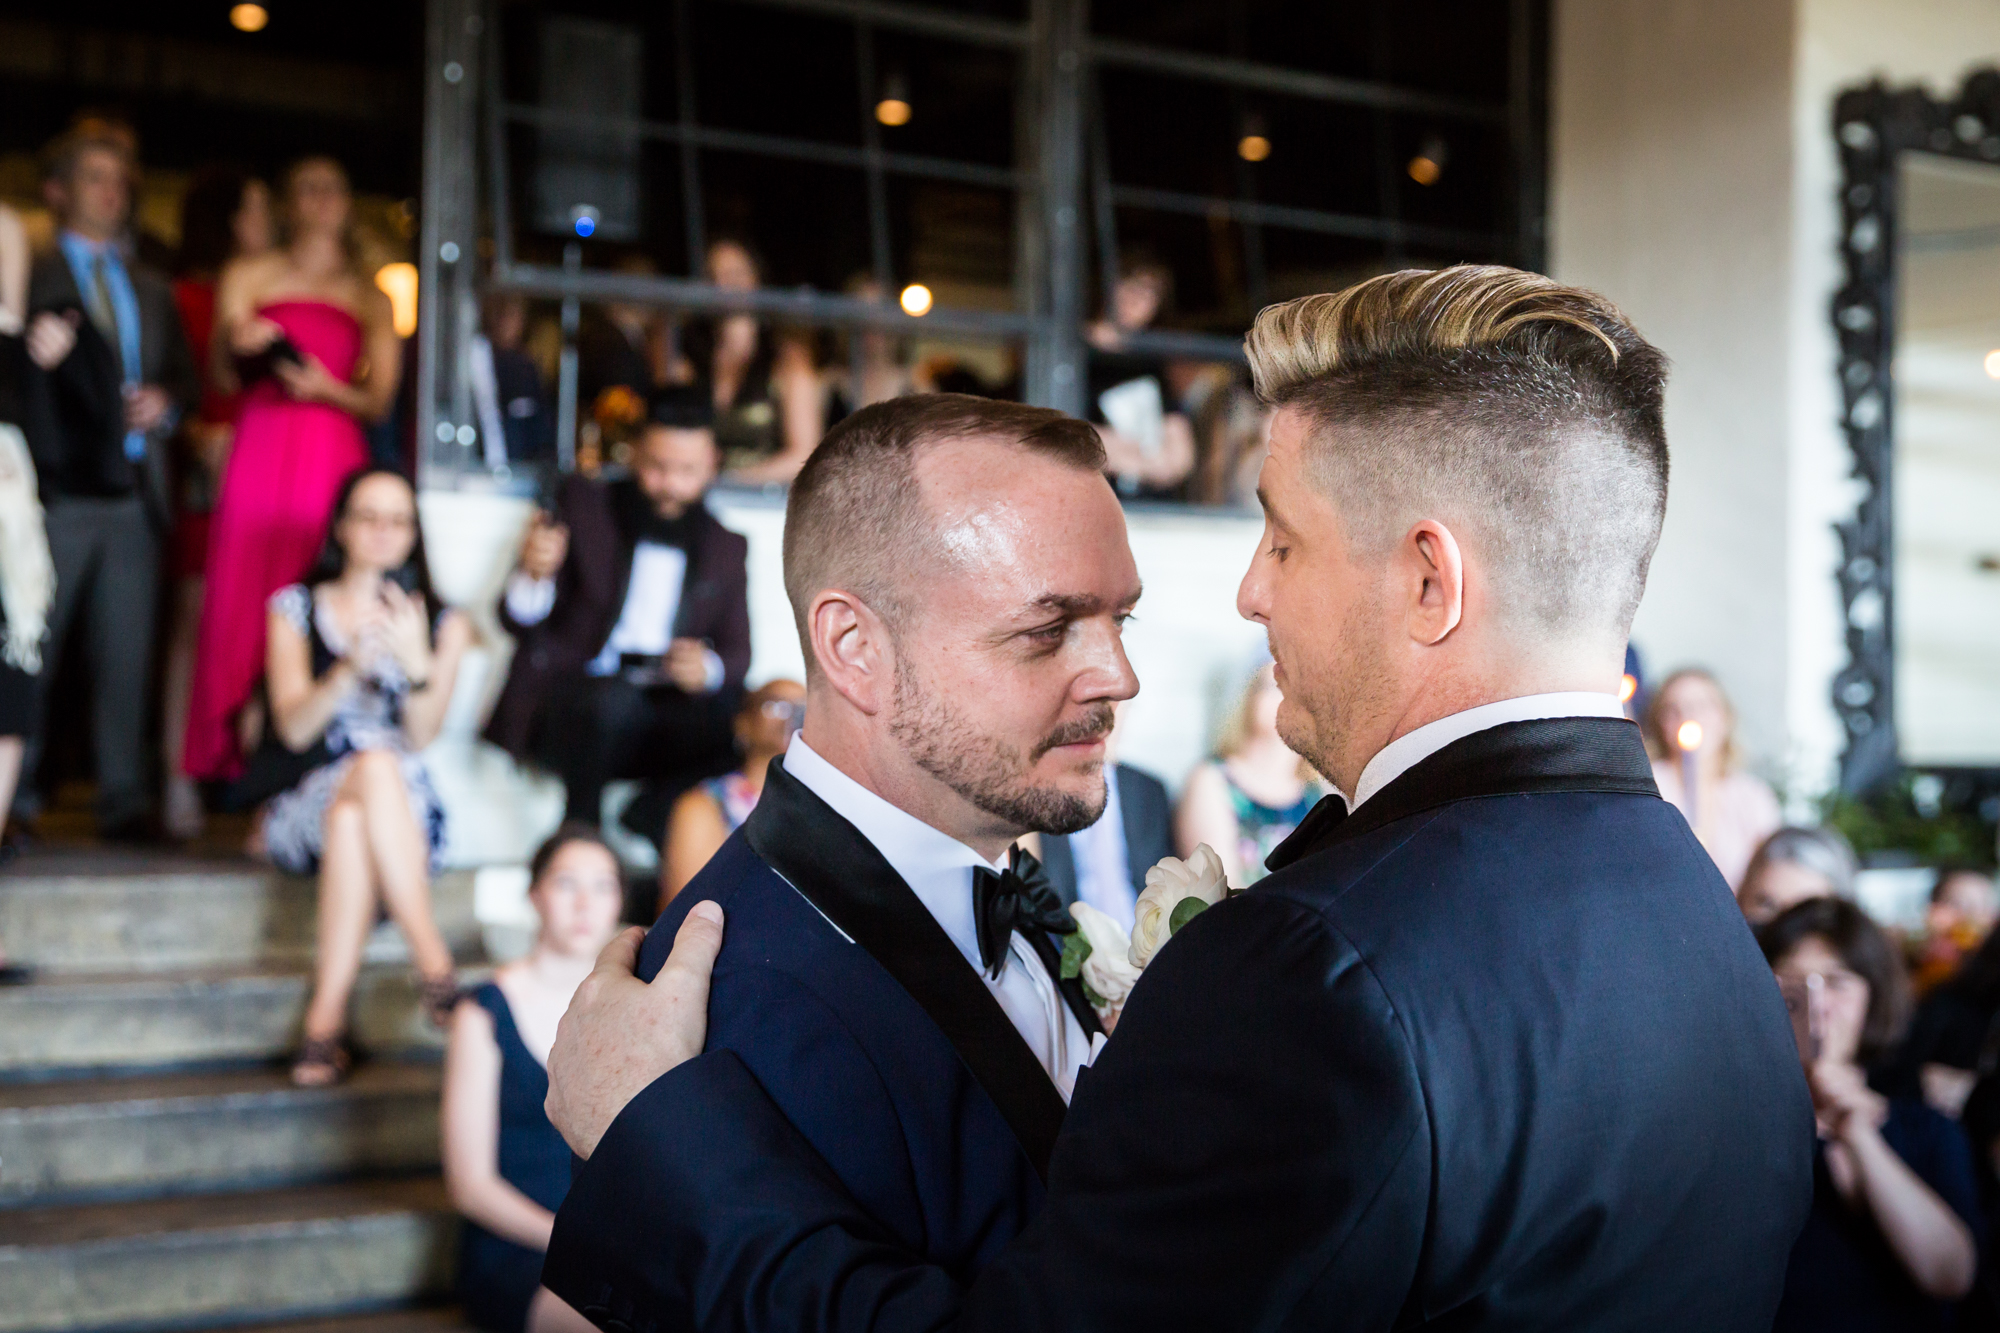 First dance at a same sex wedding celebration in Washington DC